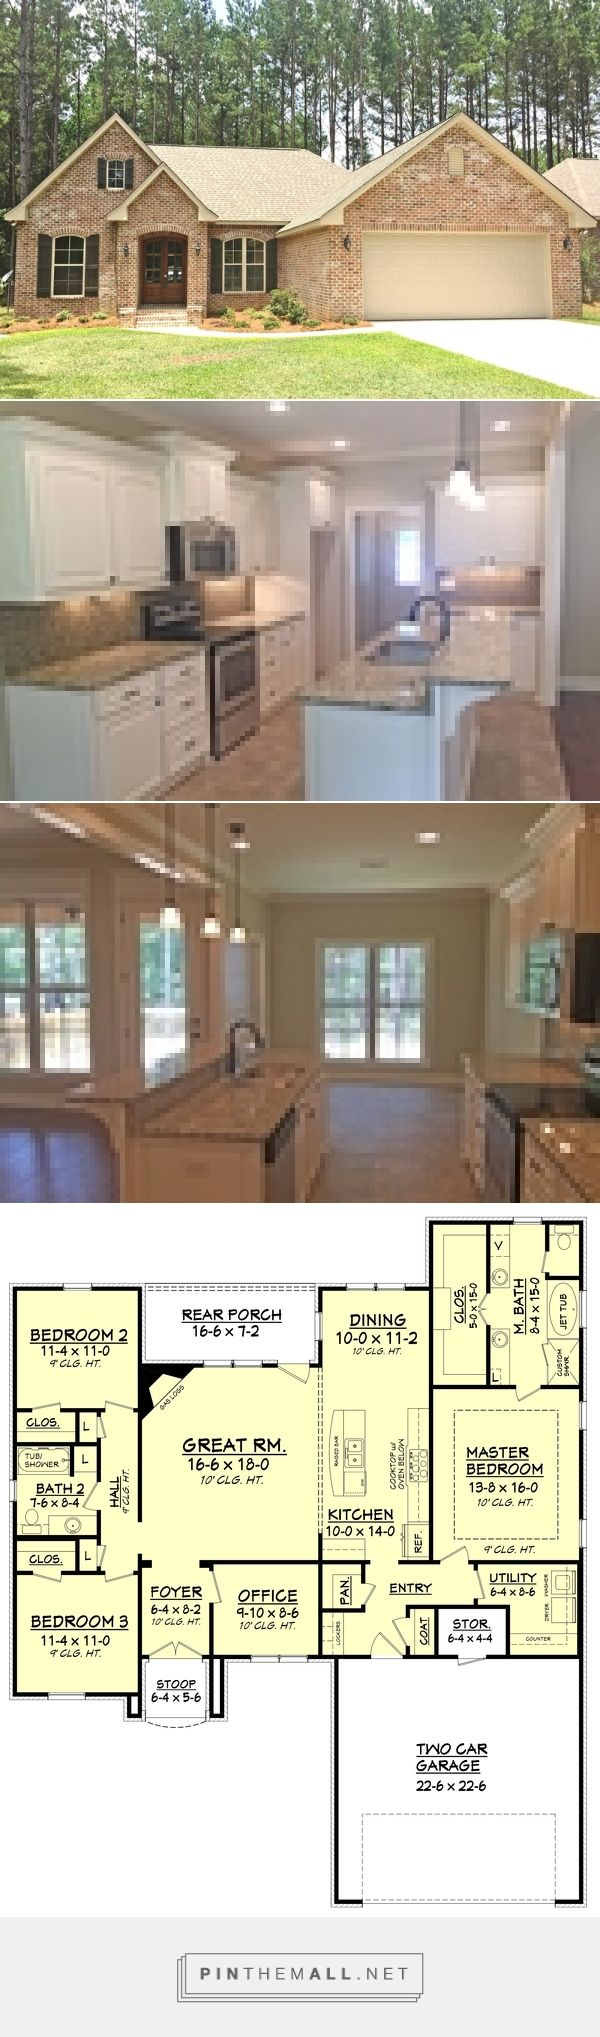 Blueprint Home Plans New in House Designerraleigh kitchen